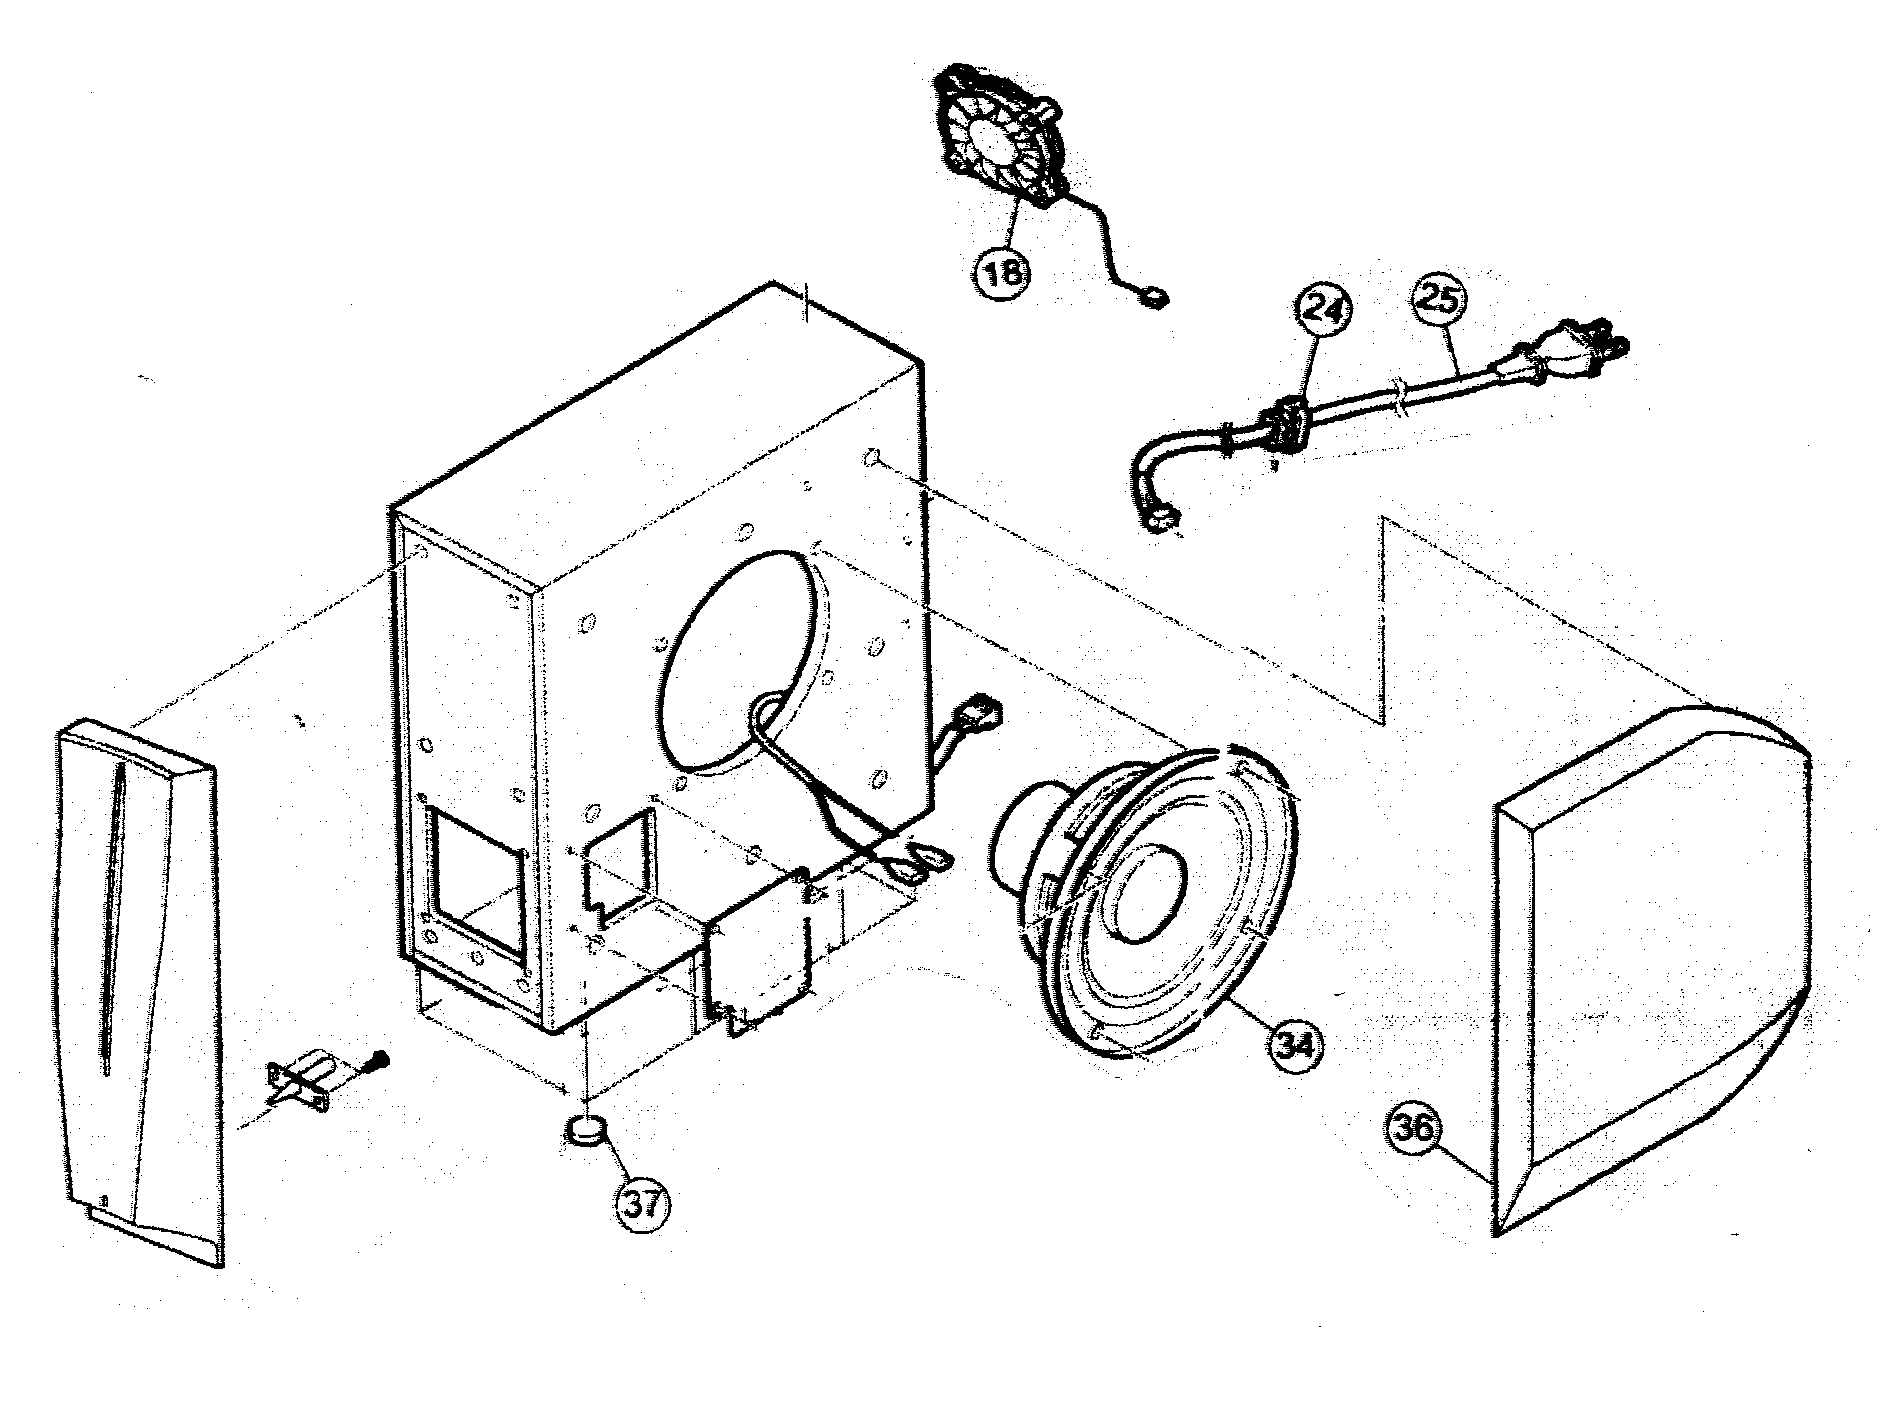 parts of a speaker diagram bunn coffee maker wiring and list for model thc3 jvc